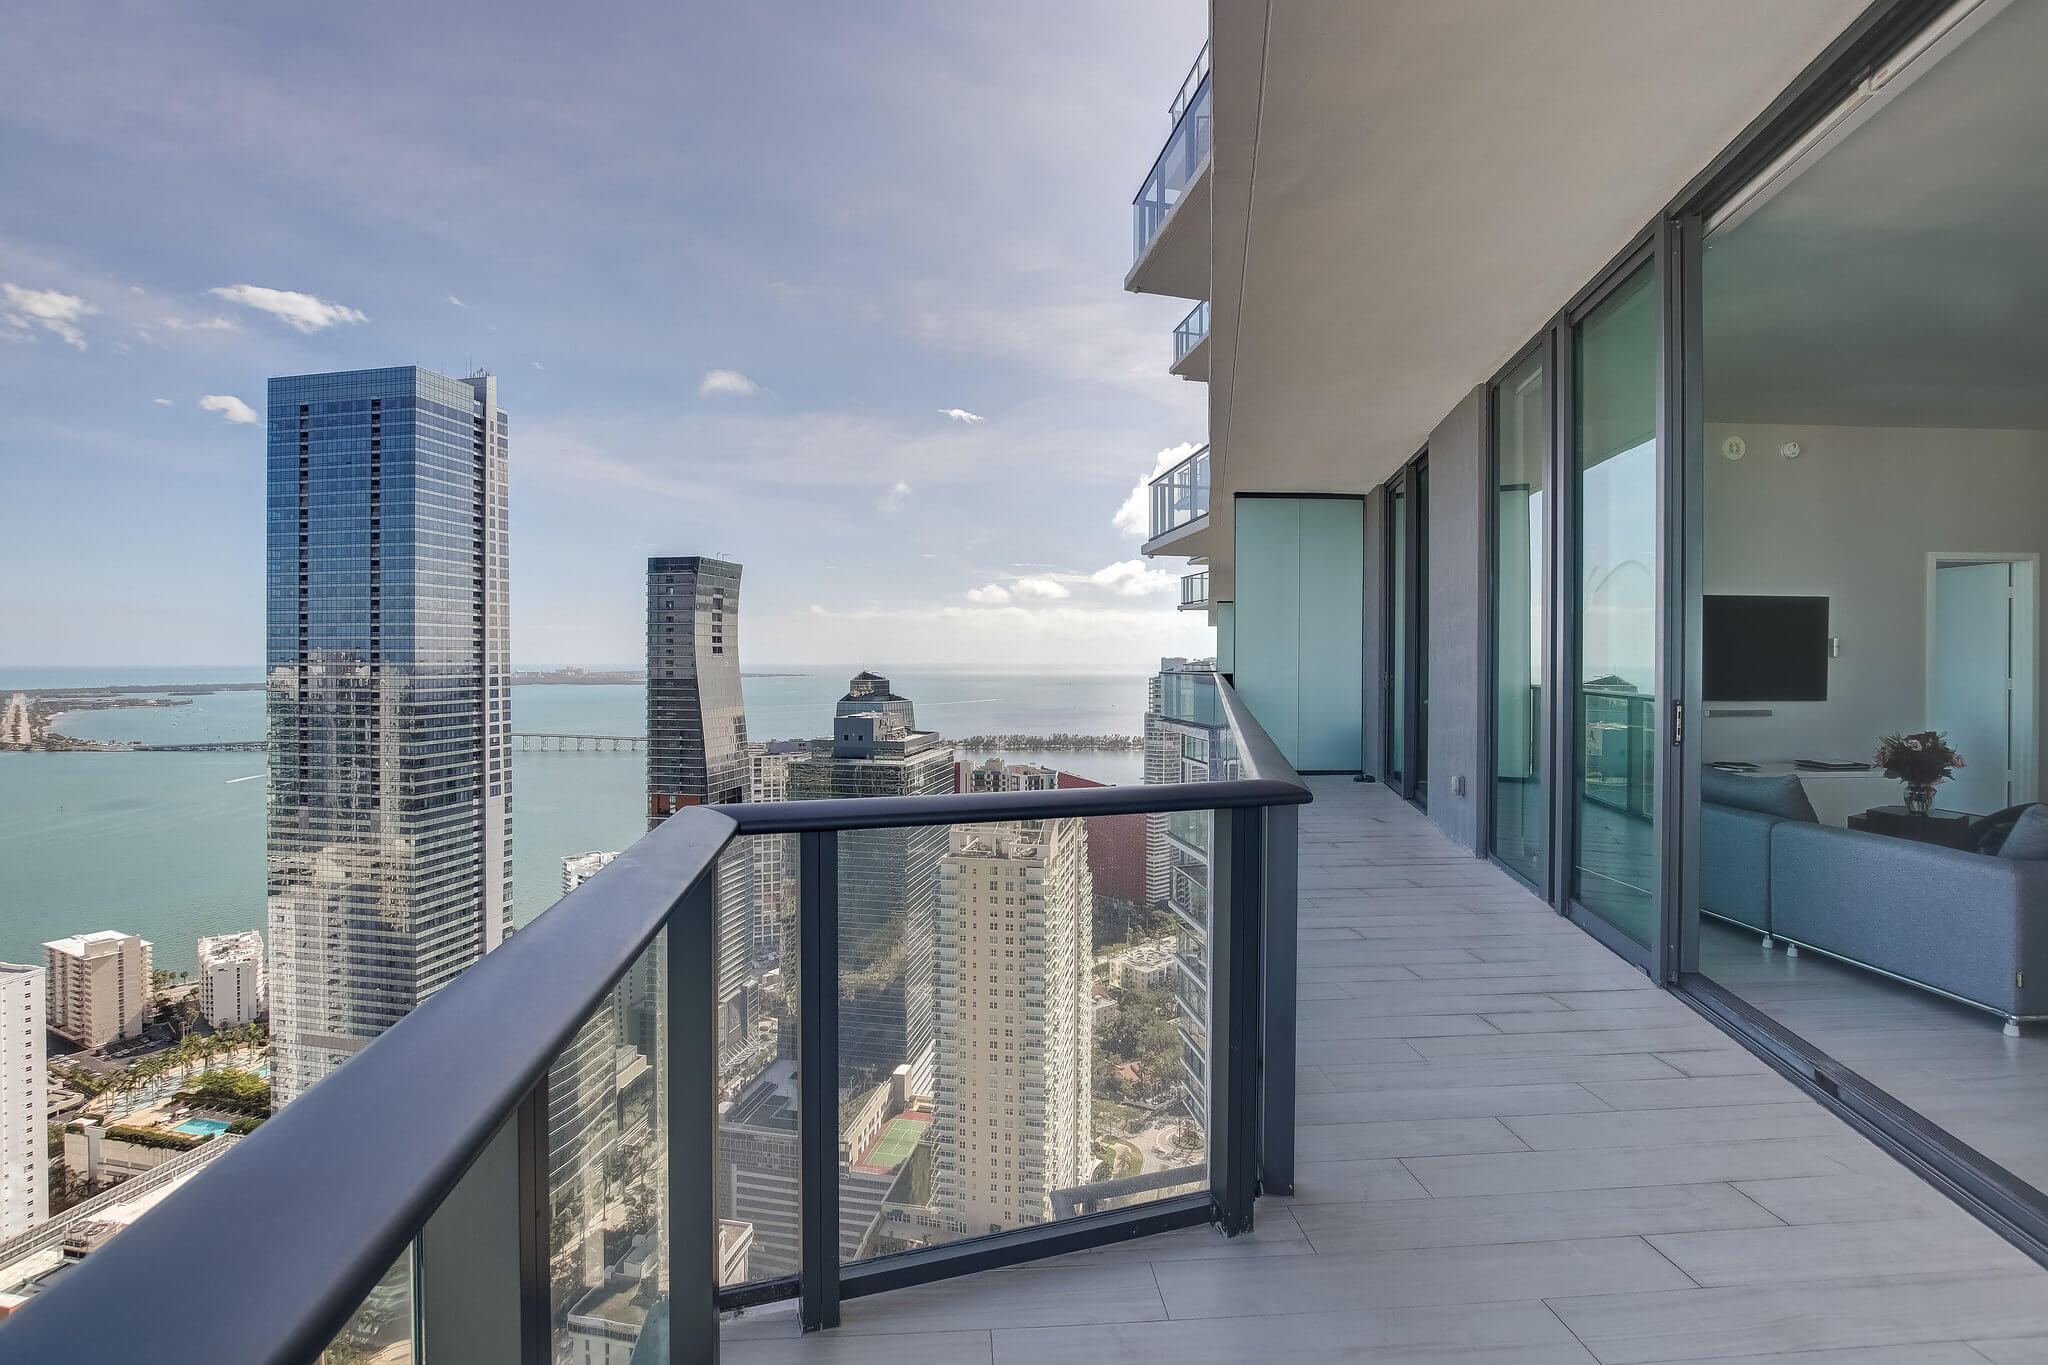 32__sls_brickell_photo_by_MiamiRealEstatePhotographers.com